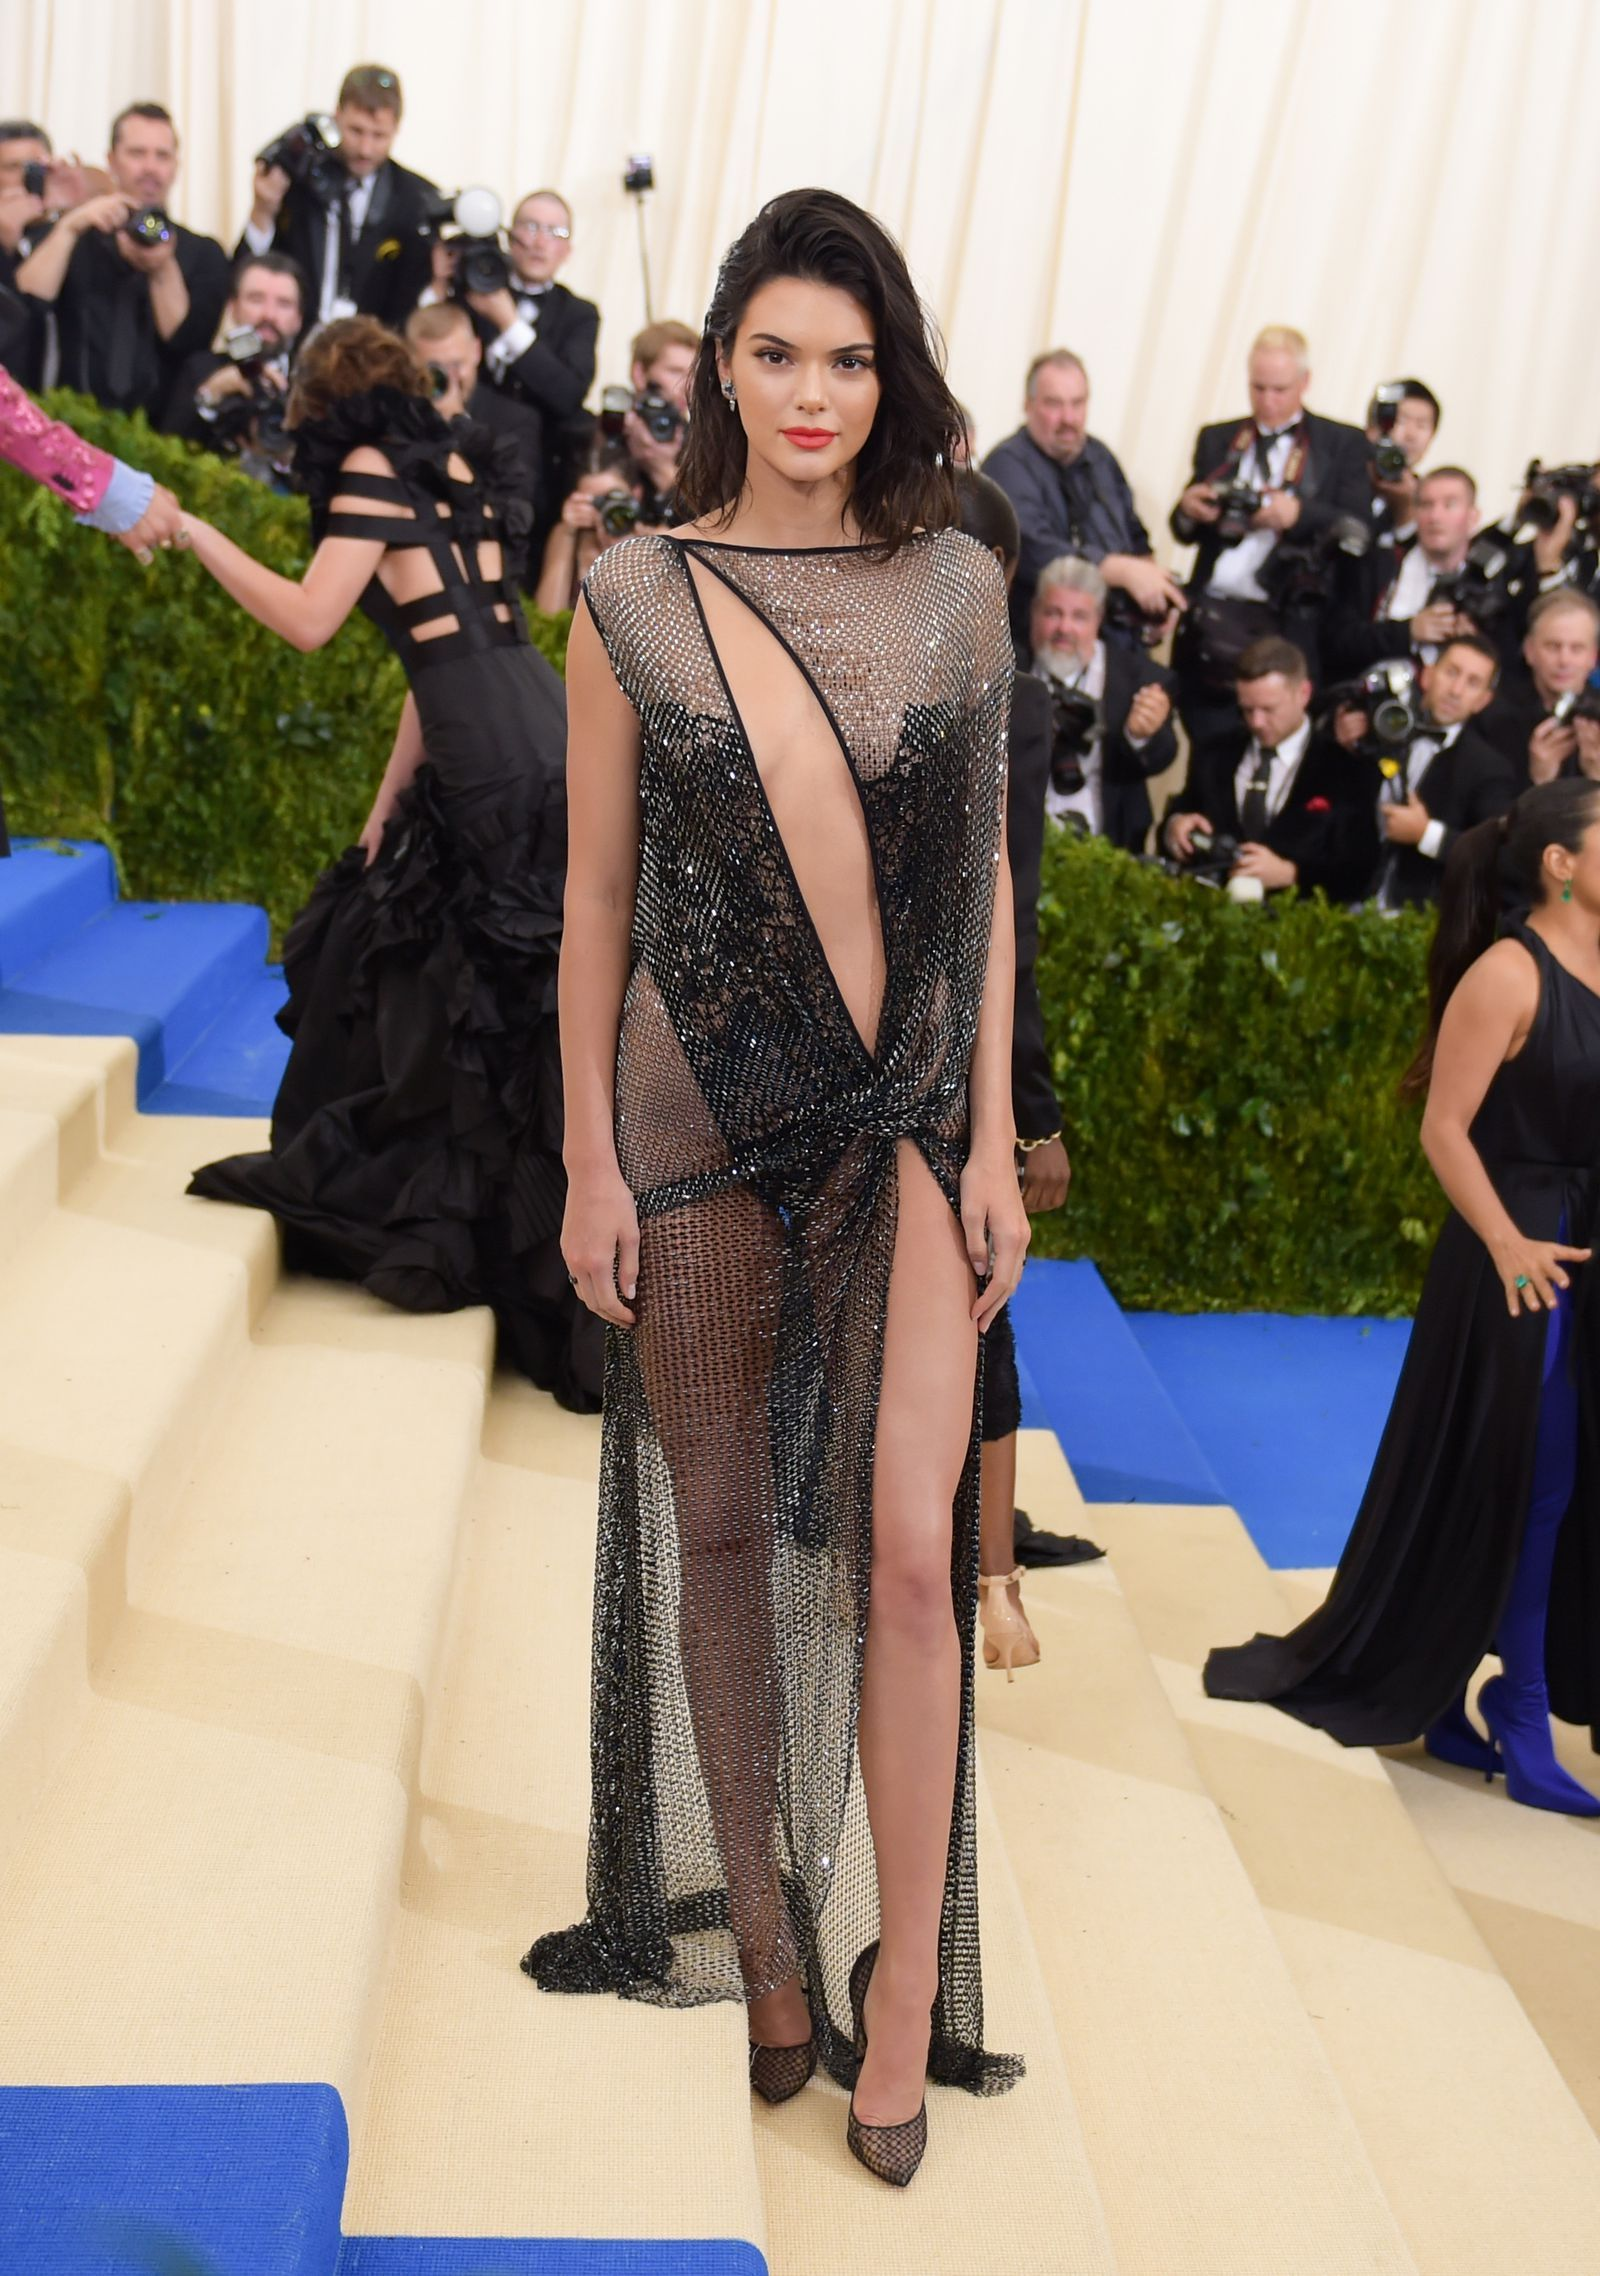 718cc4585a8c Kendall Just One-Upped Her Most Naked Look Ever in This Completely Sheer  Gold Dress- Cosmopolitan.com